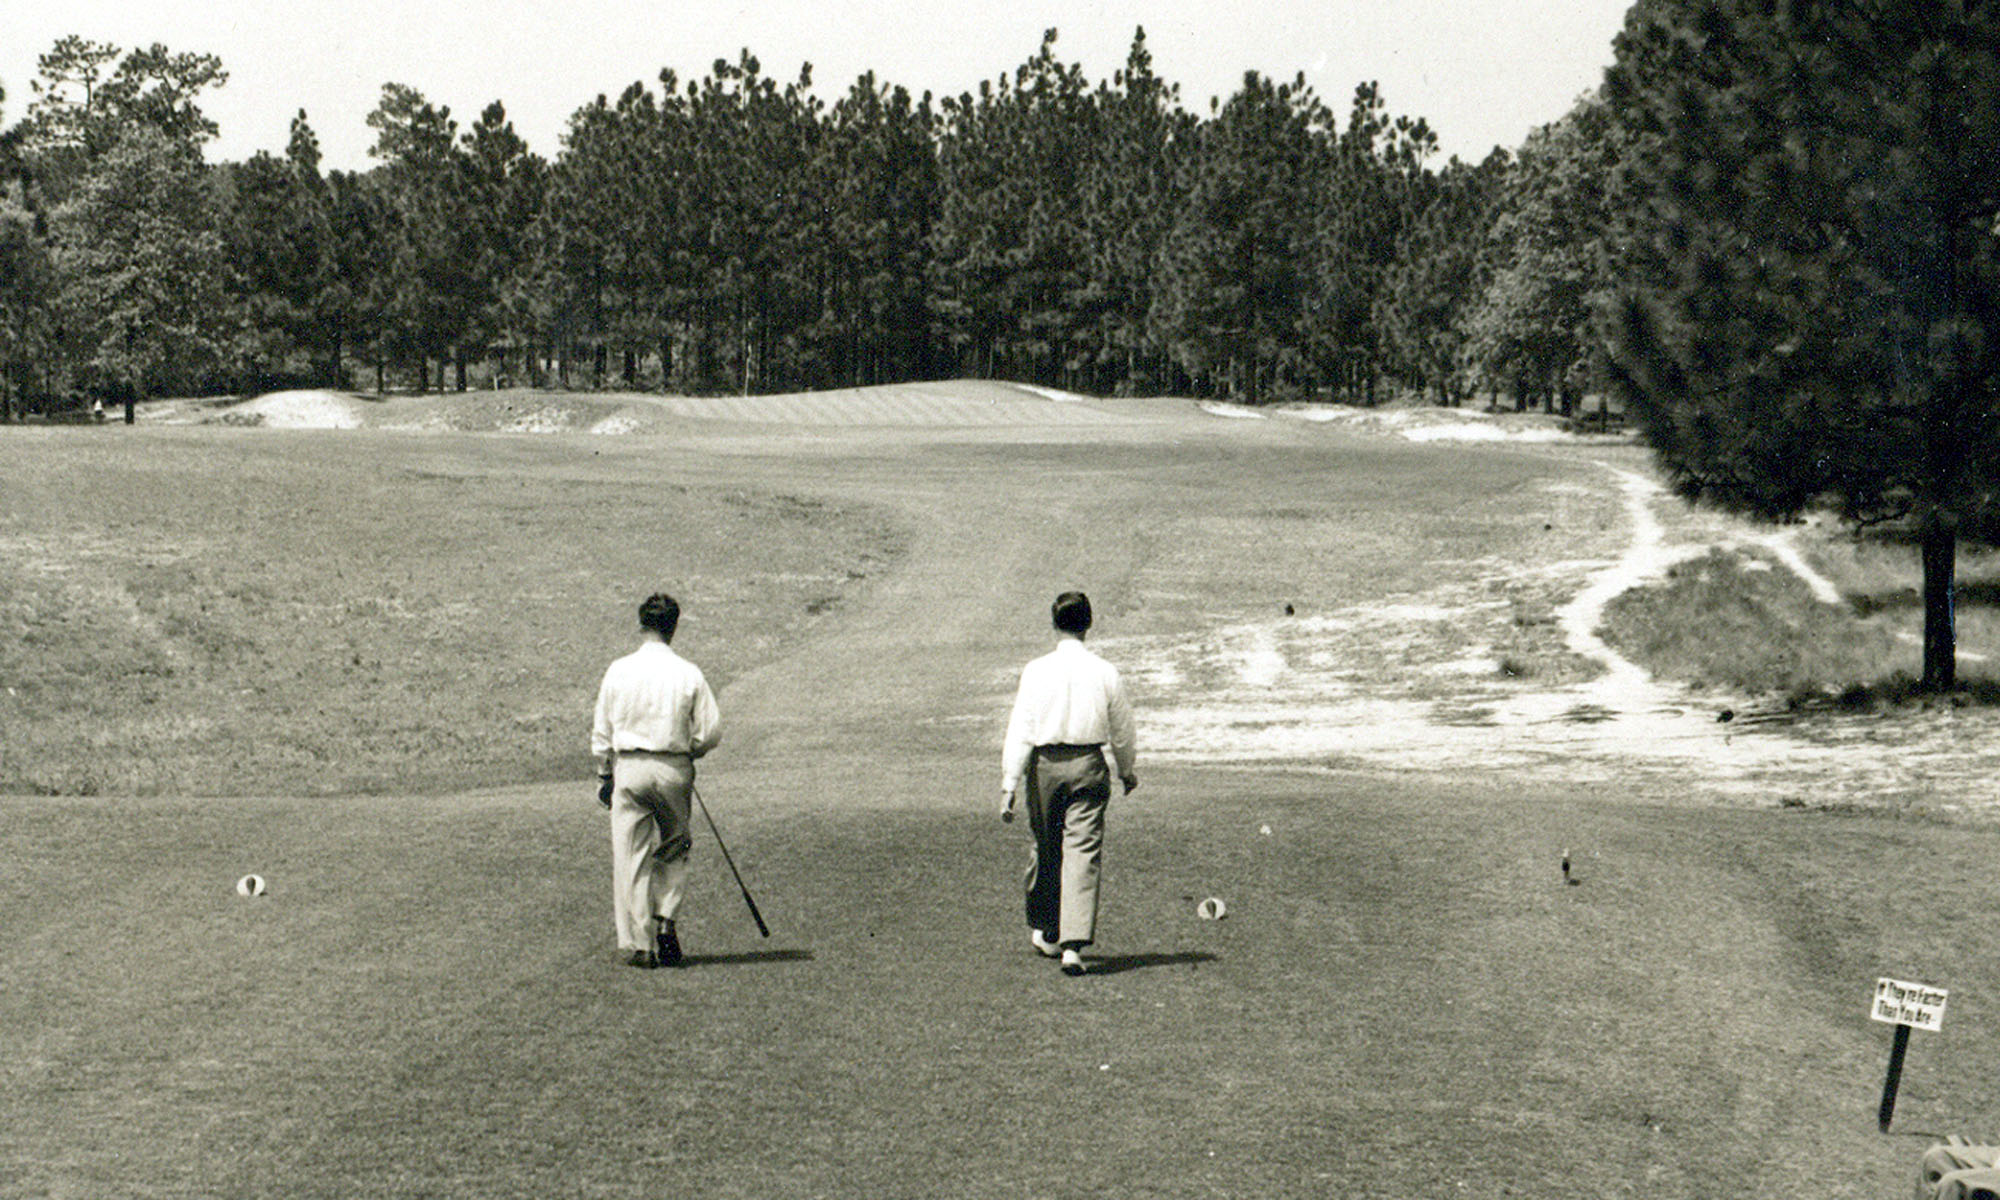 The 6th hole of Pinehurst No. 2.